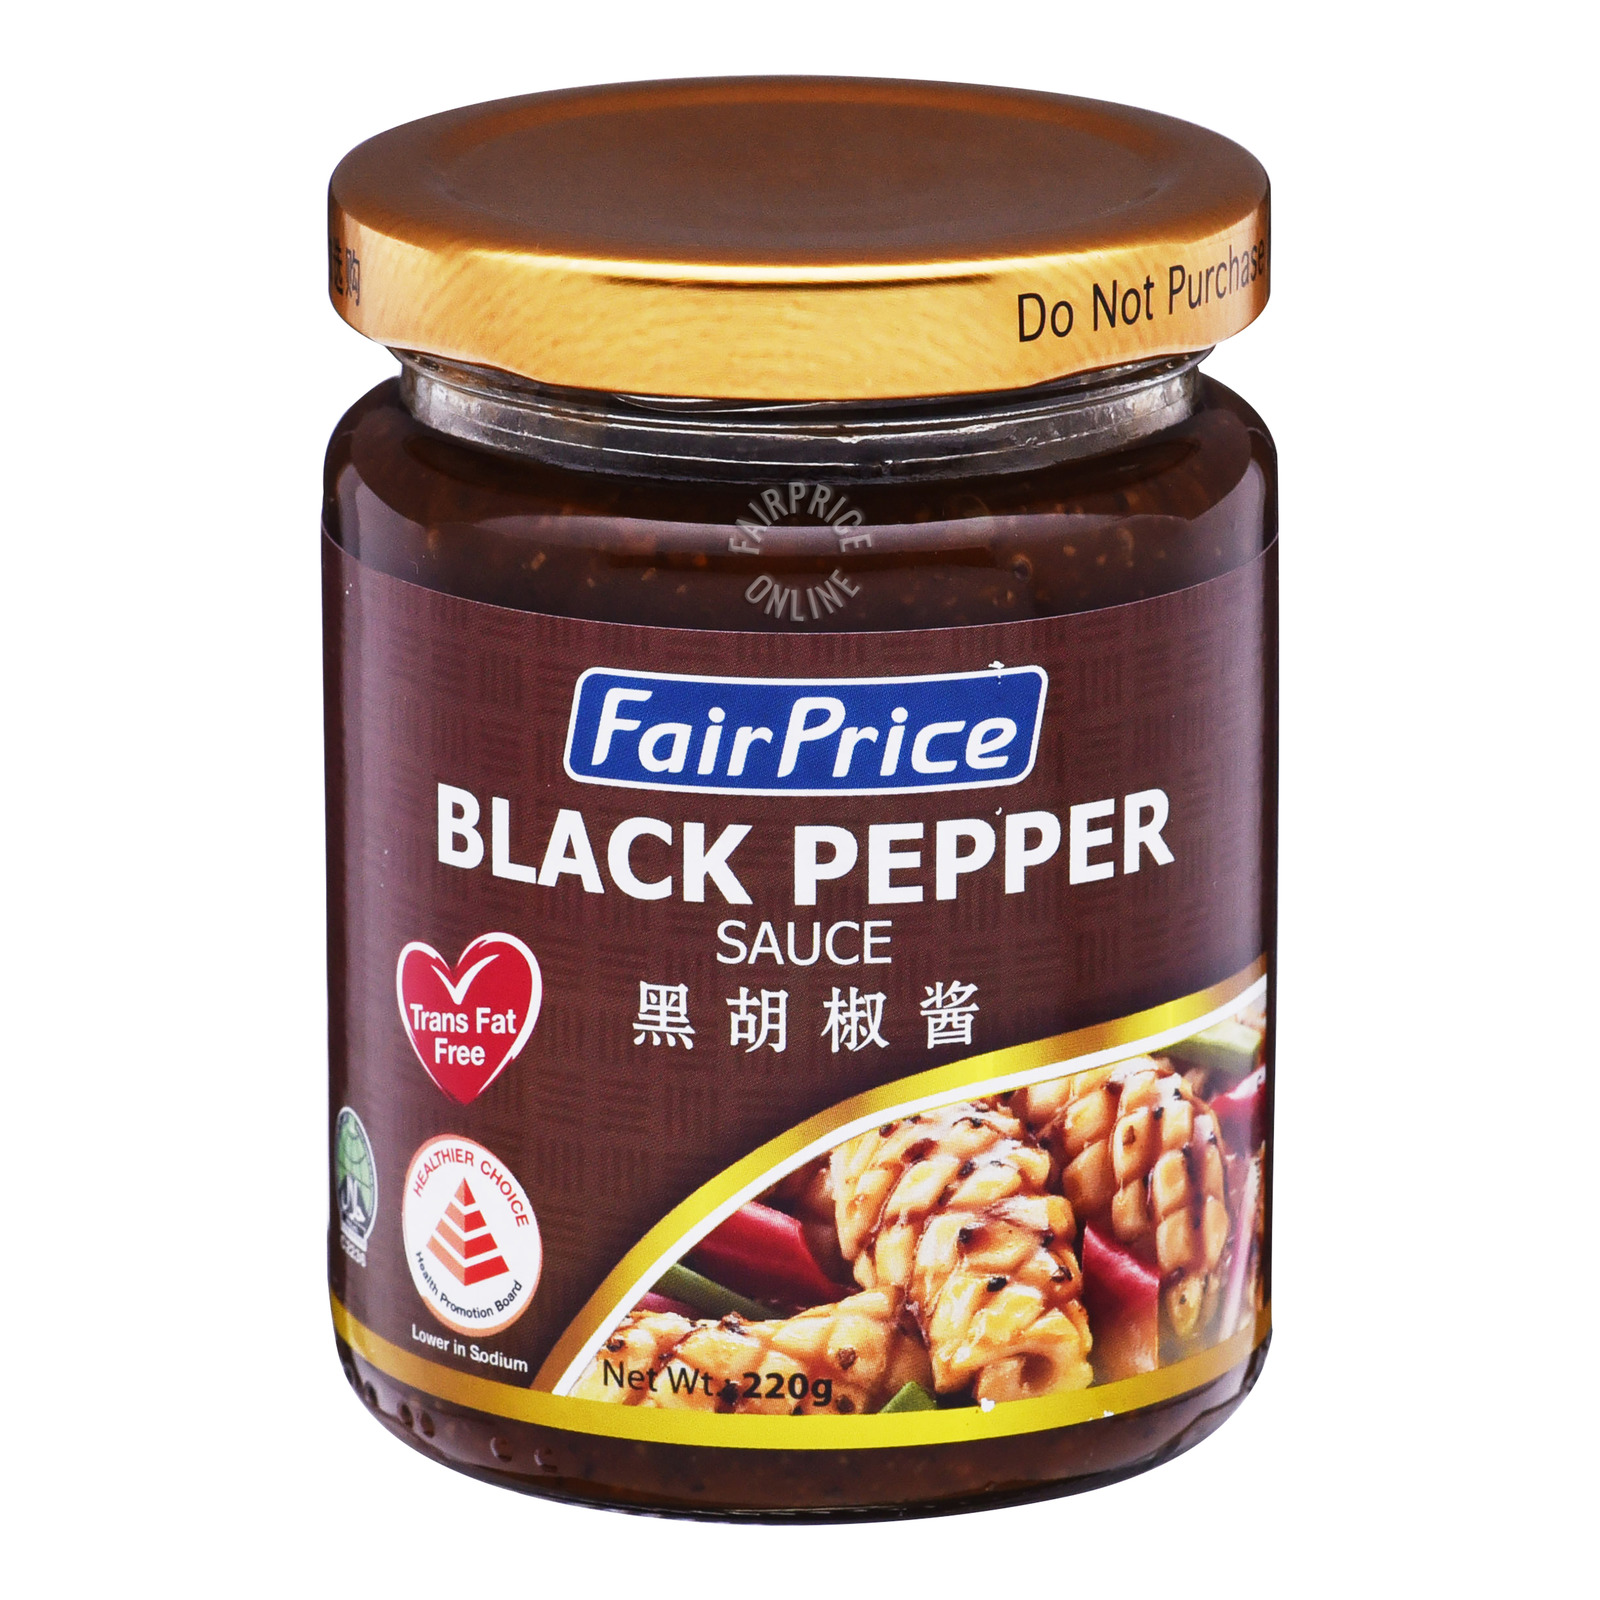 FairPrice Sauce - Black Pepper